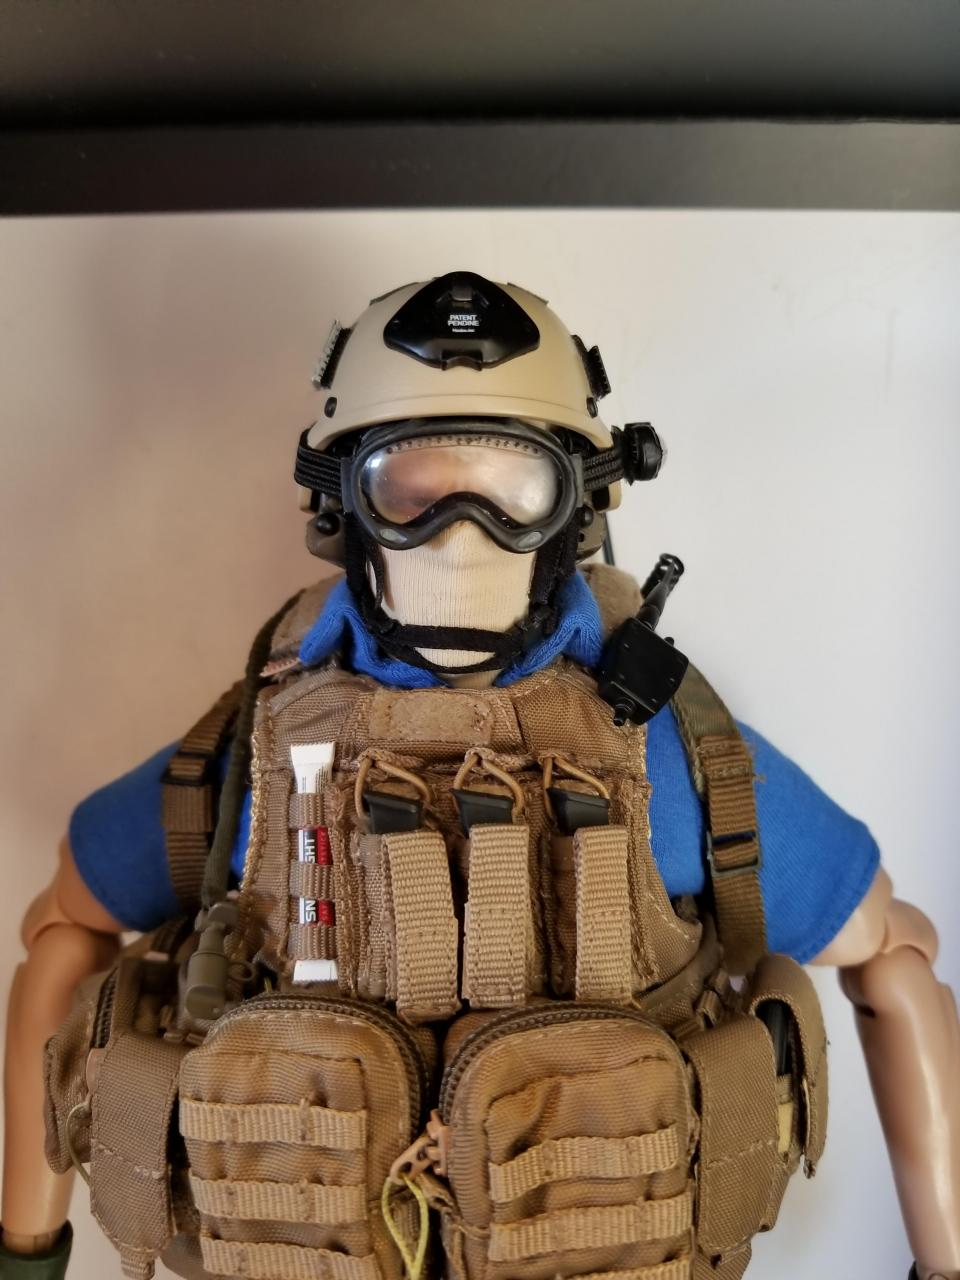 Modern Warfare 2 - Task Force 141 operative in urban wear (pic heavy)-4_-_dayl8uo[1]-jpg